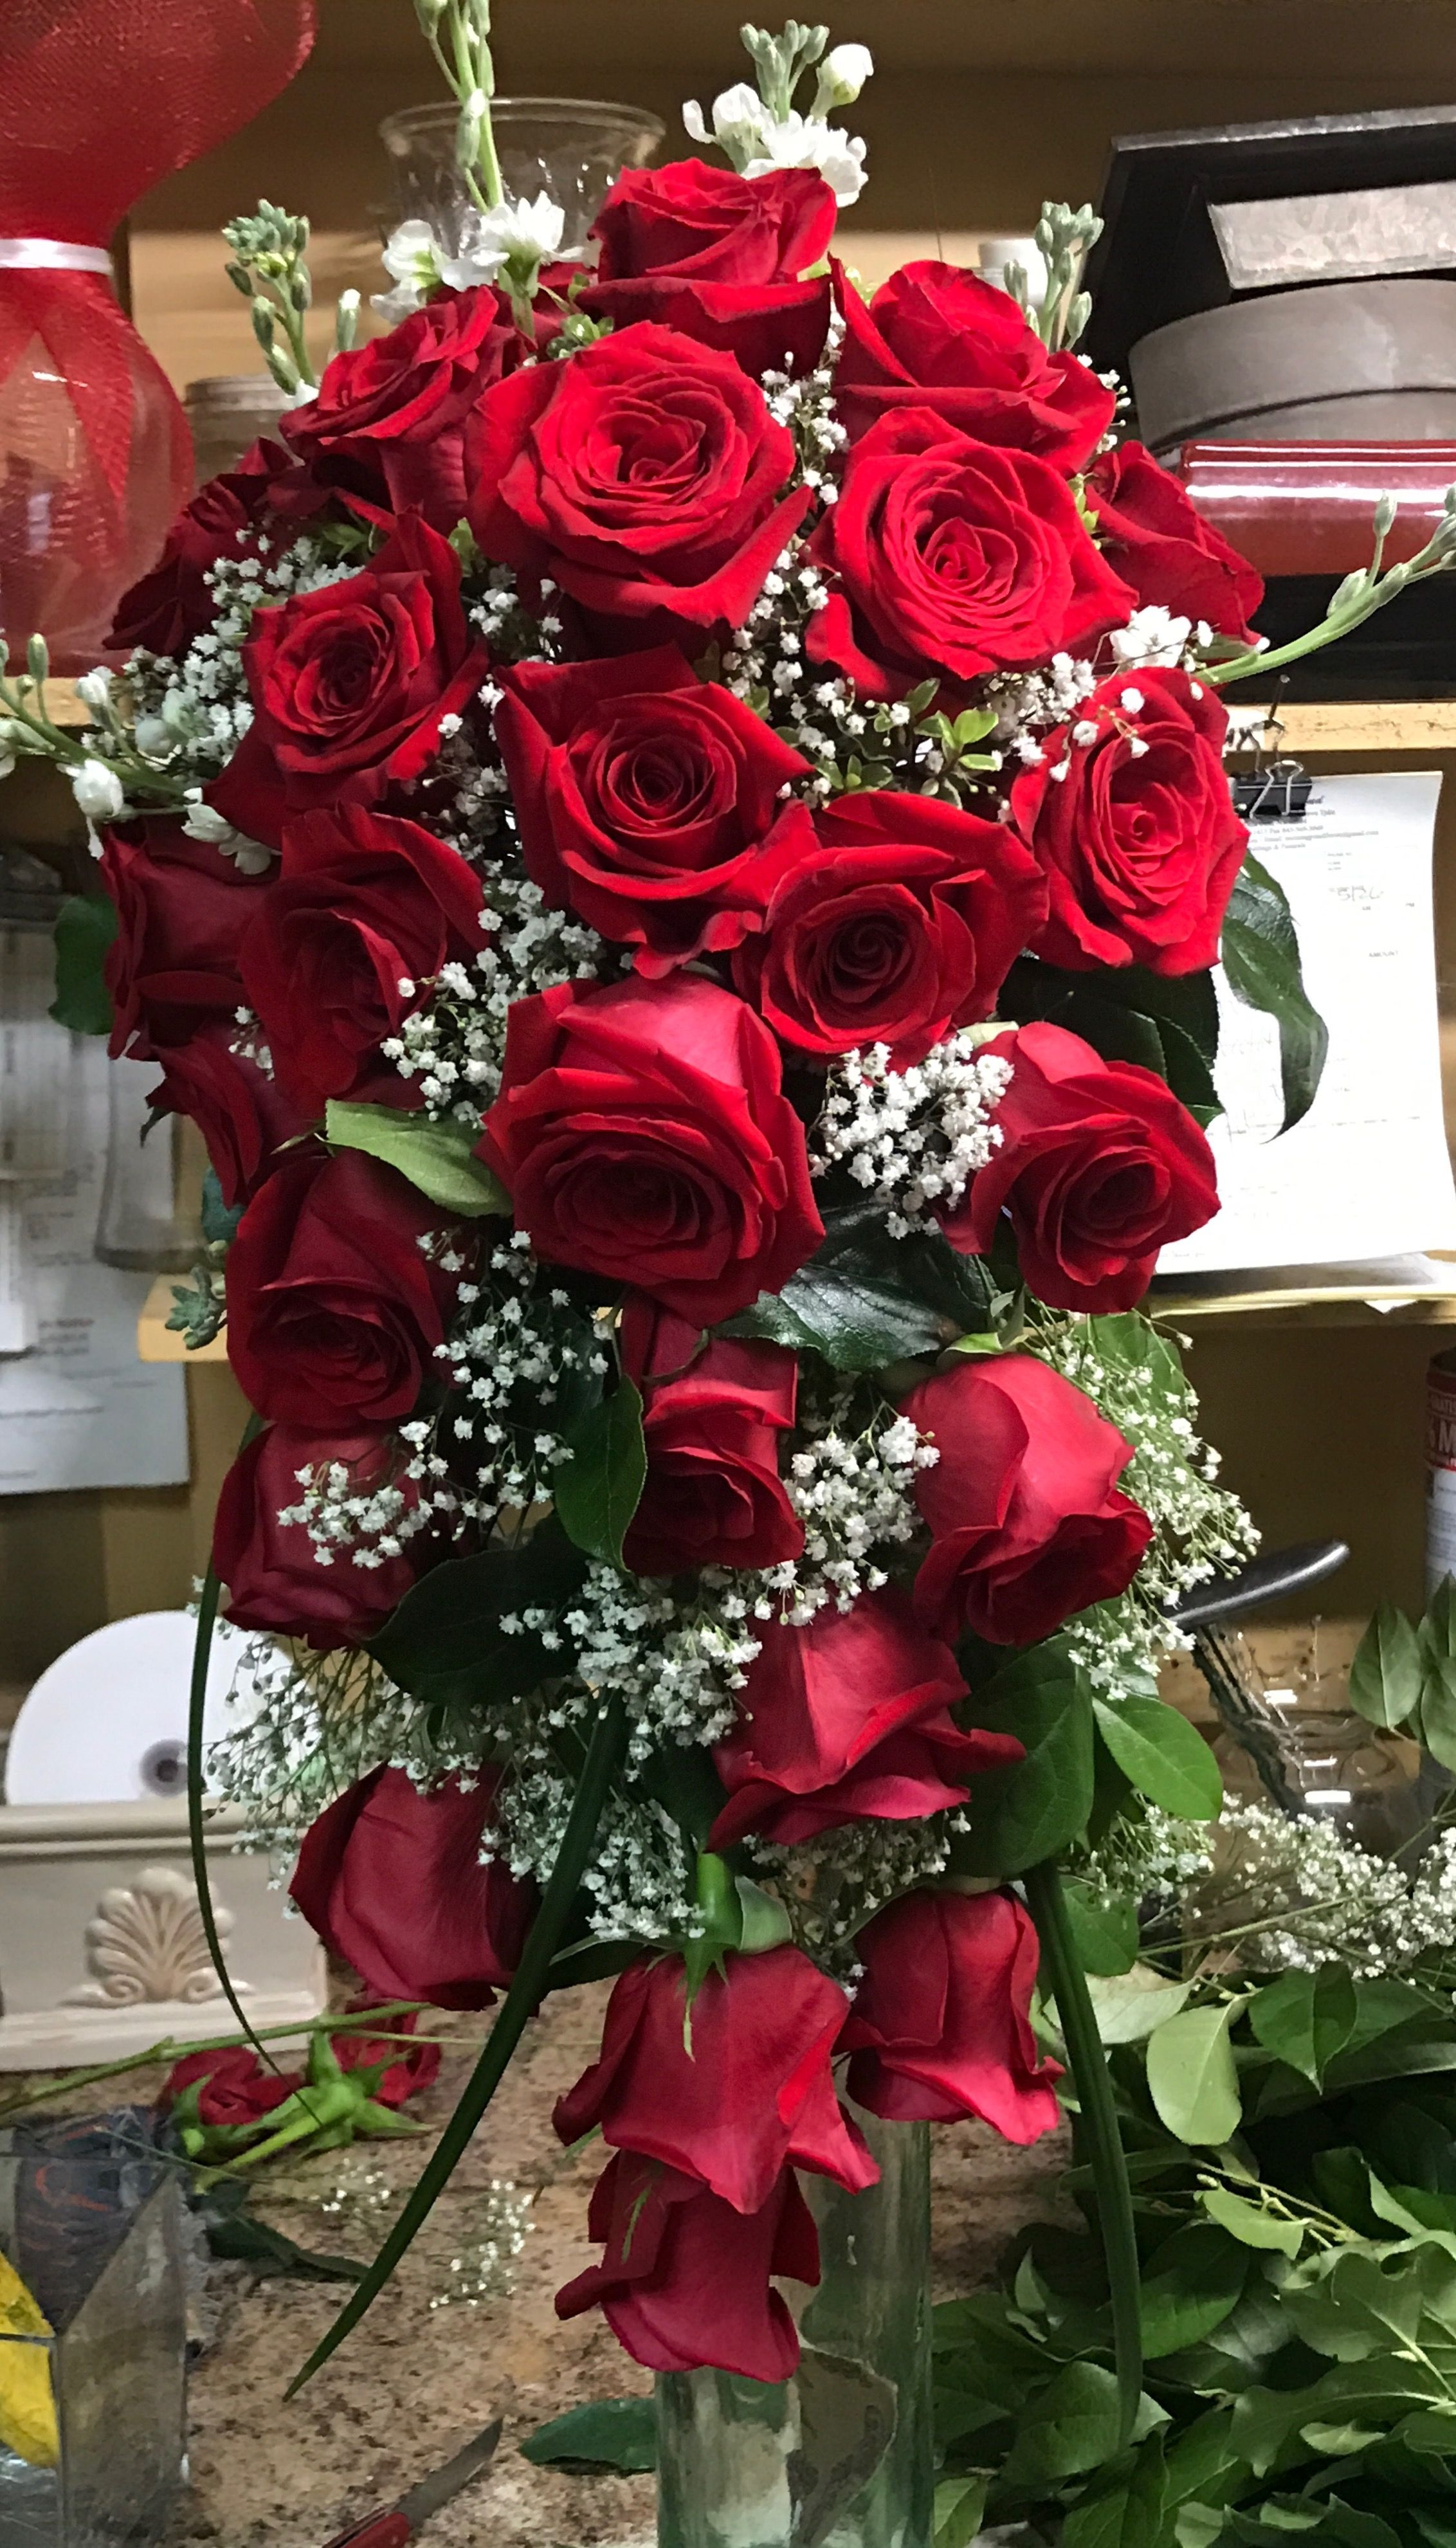 Pin by amber rosario on rylo pookeys wedding red rose